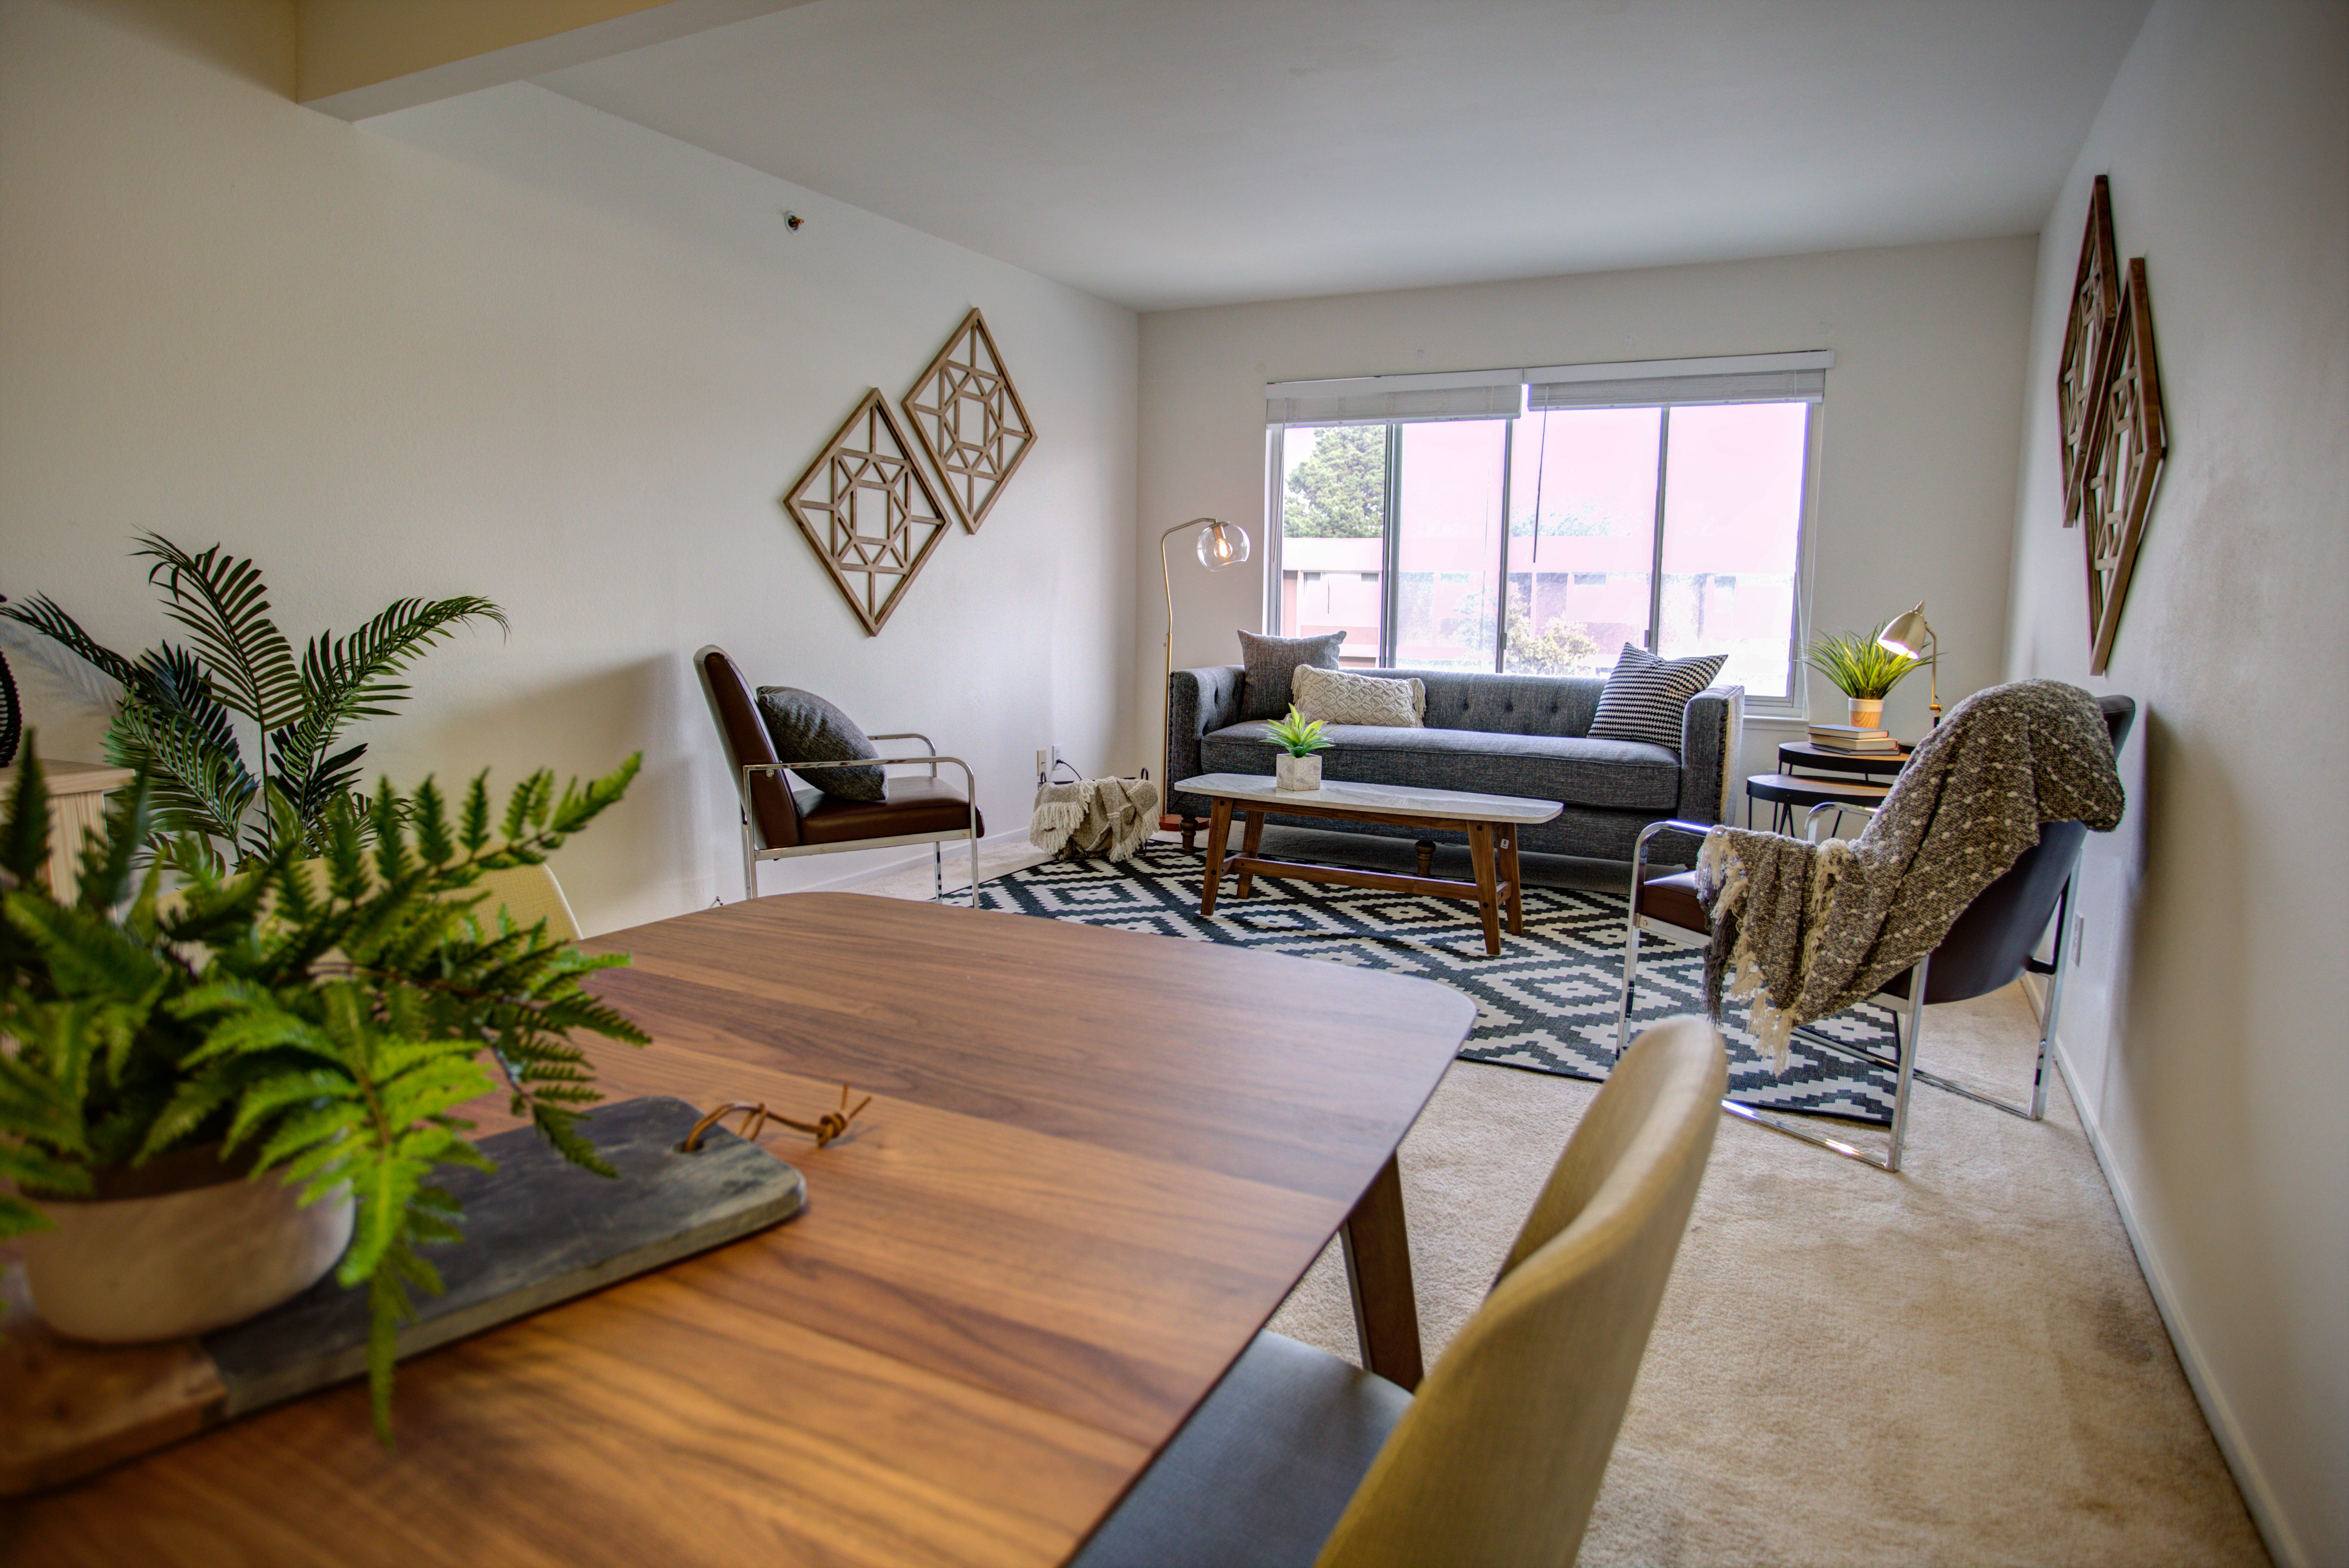 There Is Carpet Throughout The Condo, In Unit Washer/dryer, 2 Car Parking  Tandem With Additional Storage Space. This Condo Has Lower Than The Norm  HOAs.